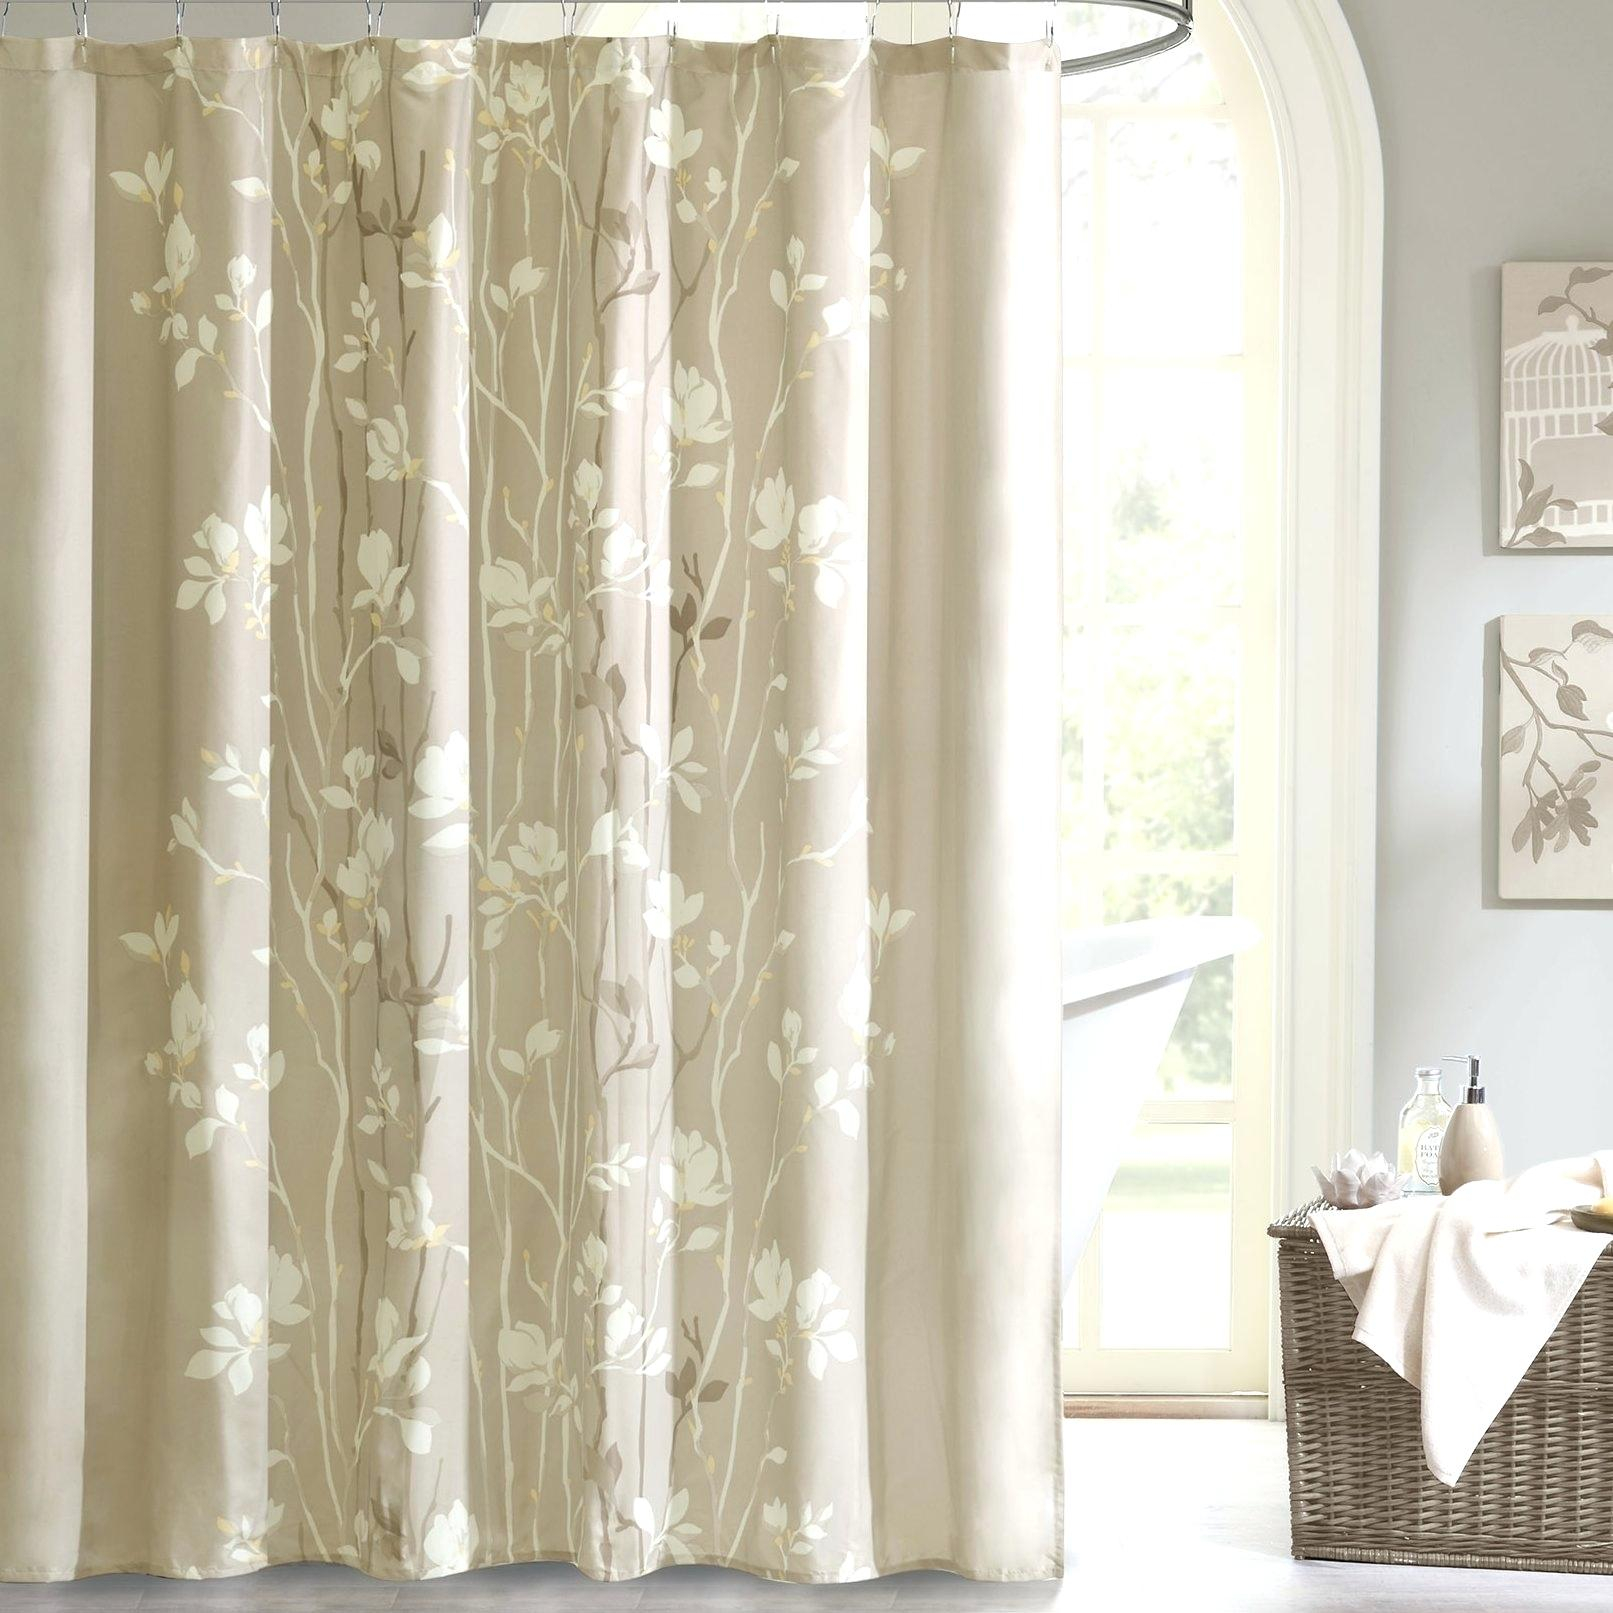 Valance Curtain With Attached Valance Priscilla Curtains With Dimensions  1613 X 1613